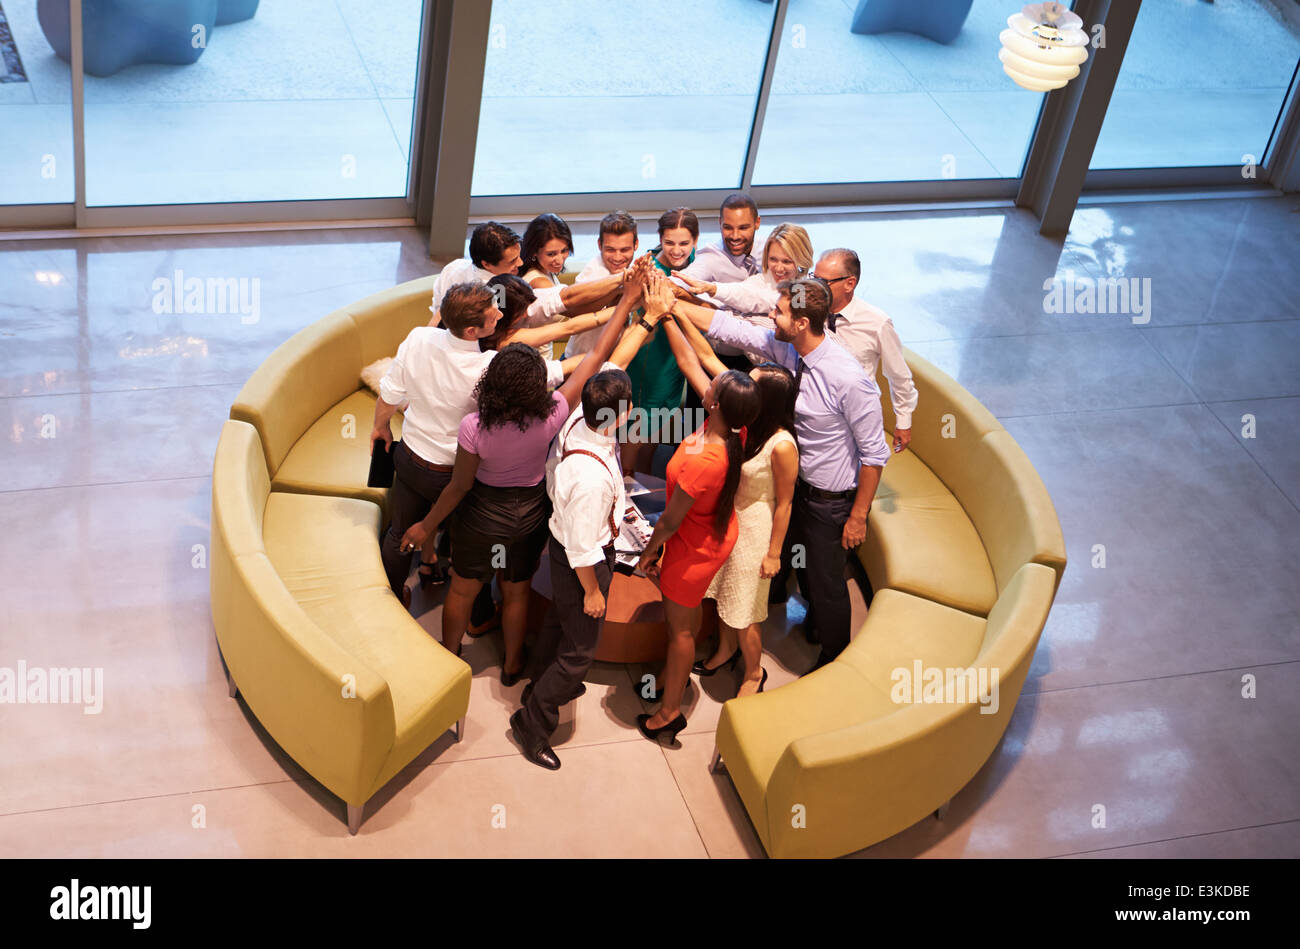 Businesspeople Giving Each Other High Five In Office Lobby - Stock Image